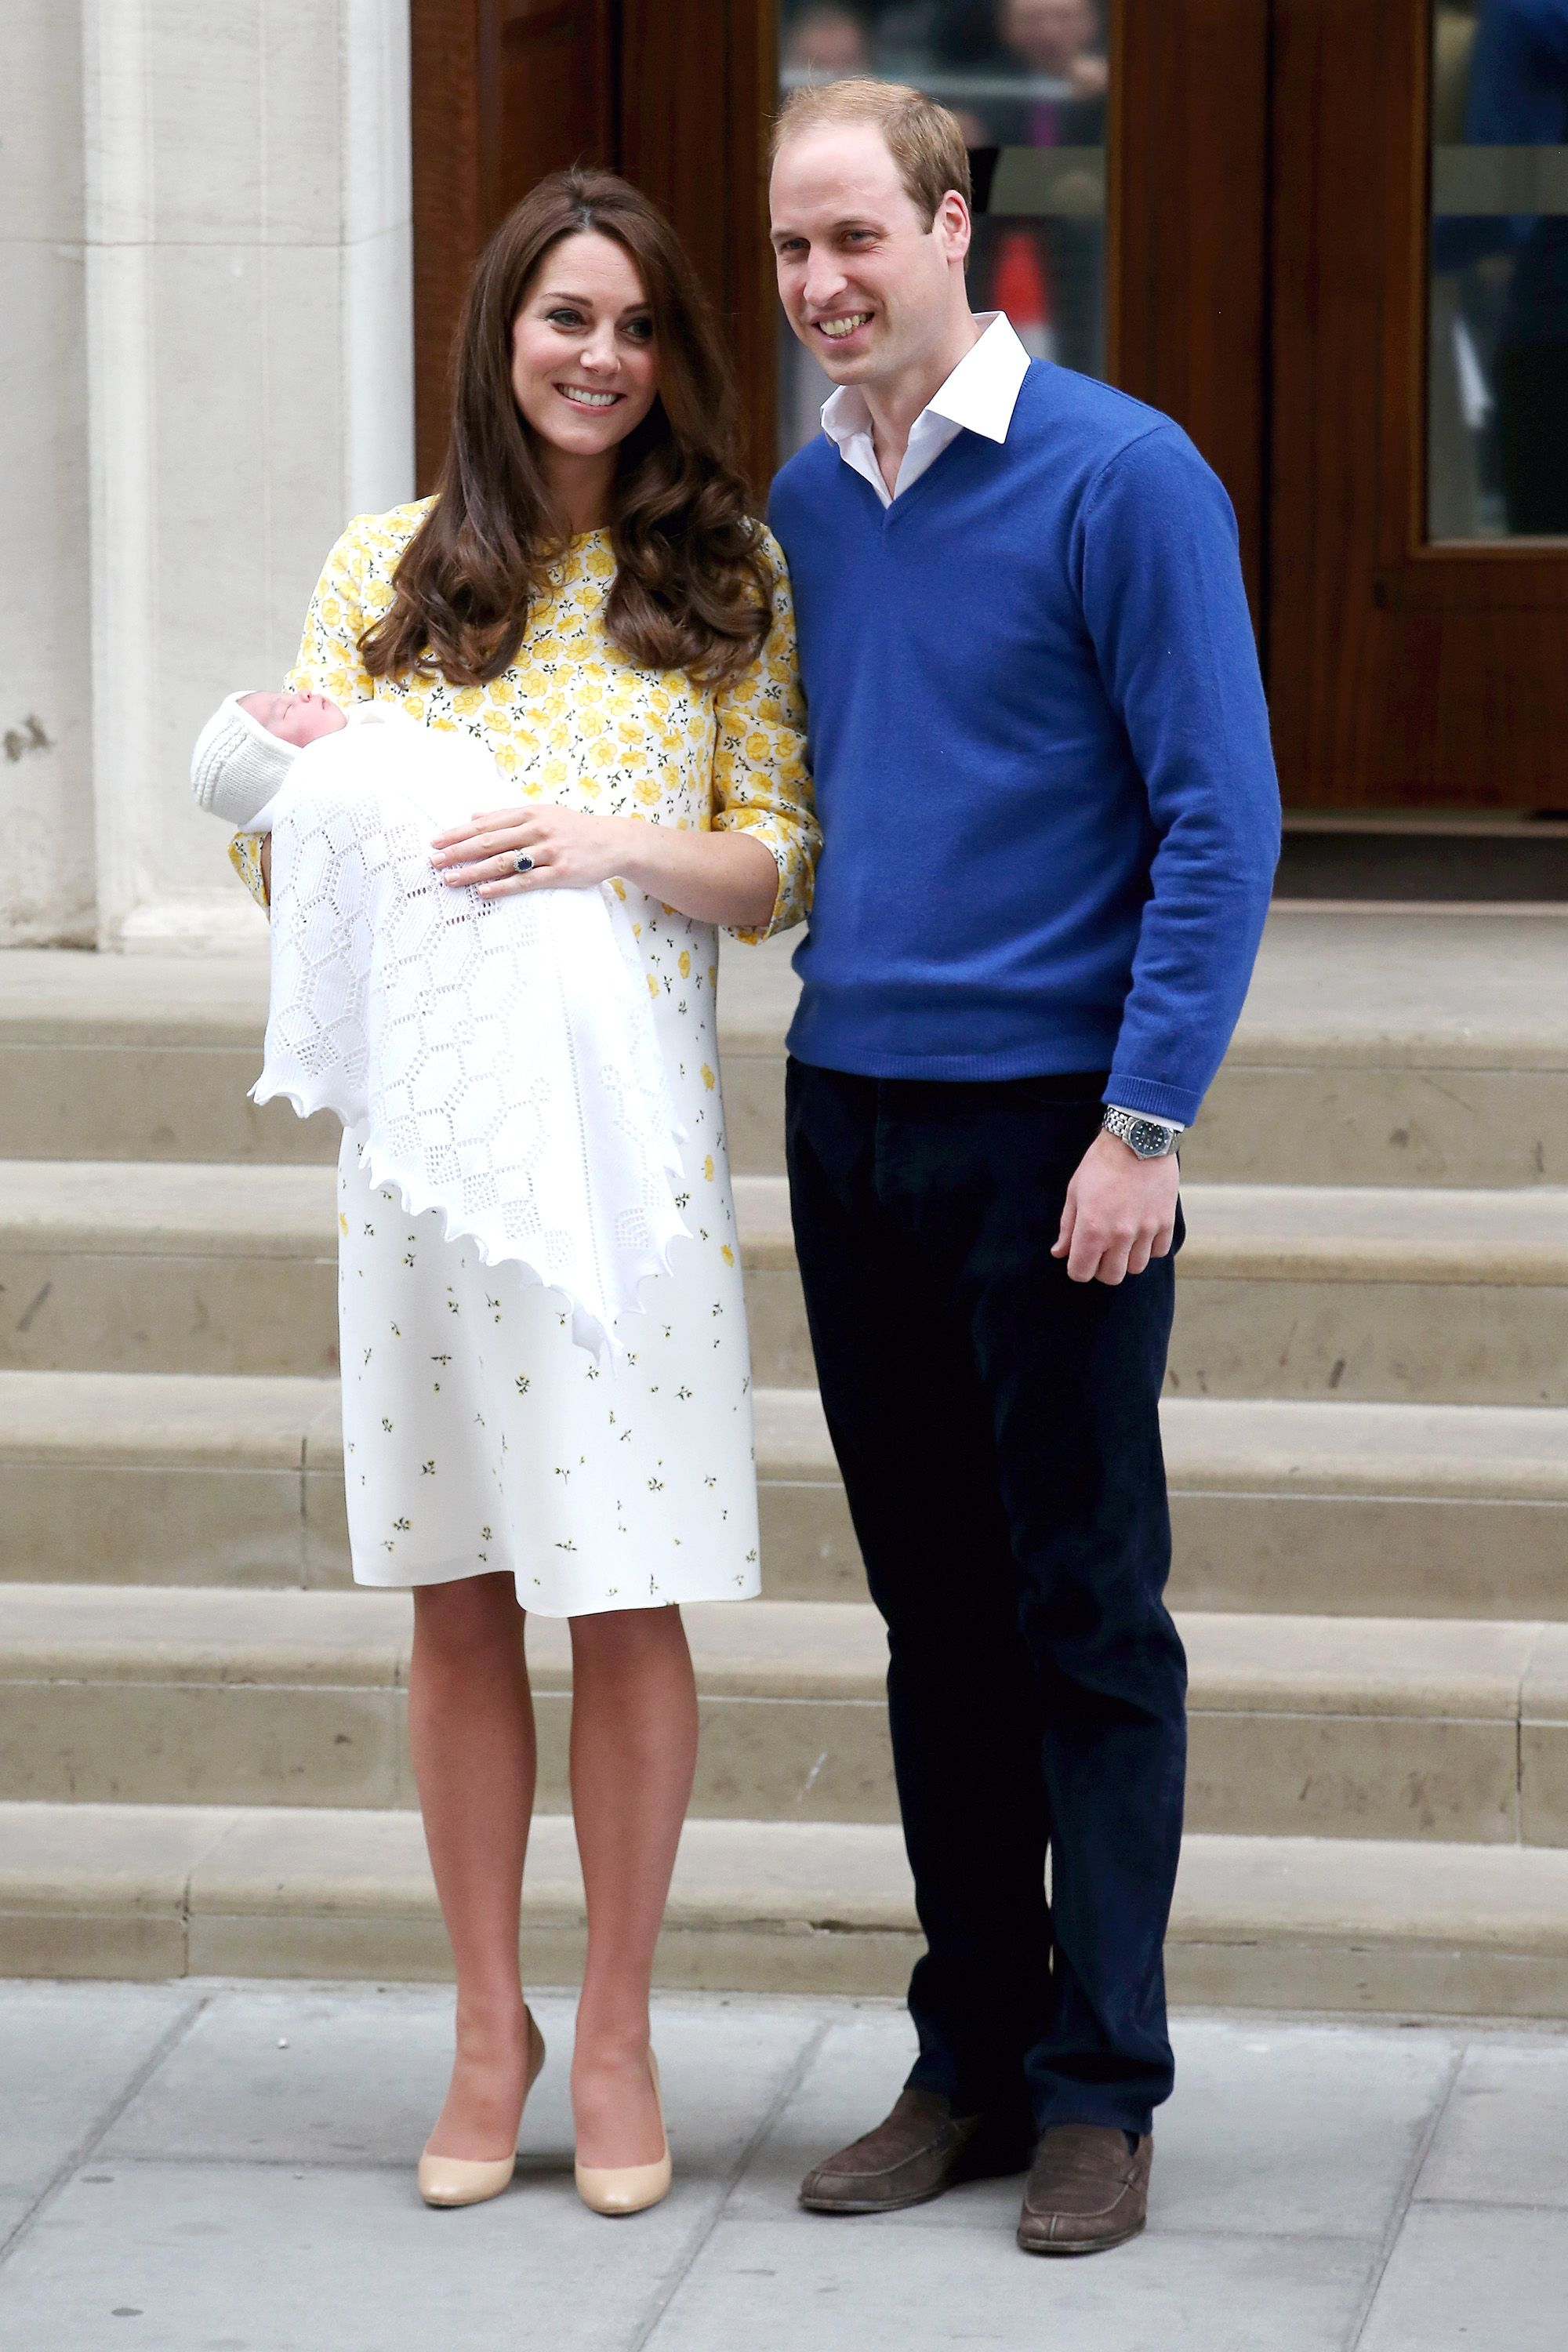 """<p>On May 2, The Duke and Duchess of Cambridge <a href=""""http://www.harpersbazaar.com/celebrity/latest/g5650/royal-baby-birth/"""" target=""""_blank"""">welcomed their second child</a>, Princess Charlotte, sparking global fanfare and a <a href=""""http://www.harpersbazaar.com/celebrity/latest/news/a11373/princess-charlotte-christening/"""" target=""""_blank"""">frenzy for photos</a> of the newborn. With rumors swirling that Kate and Pippa are about to launch <a href=""""http://www.harpersbazaar.com/celebrity/latest/a13045/kate-middleton-organic-food-line/"""" target=""""_blank"""">their own line of organic food</a>, 2016 is sure to be full of surprises from the royal couple.</p>"""